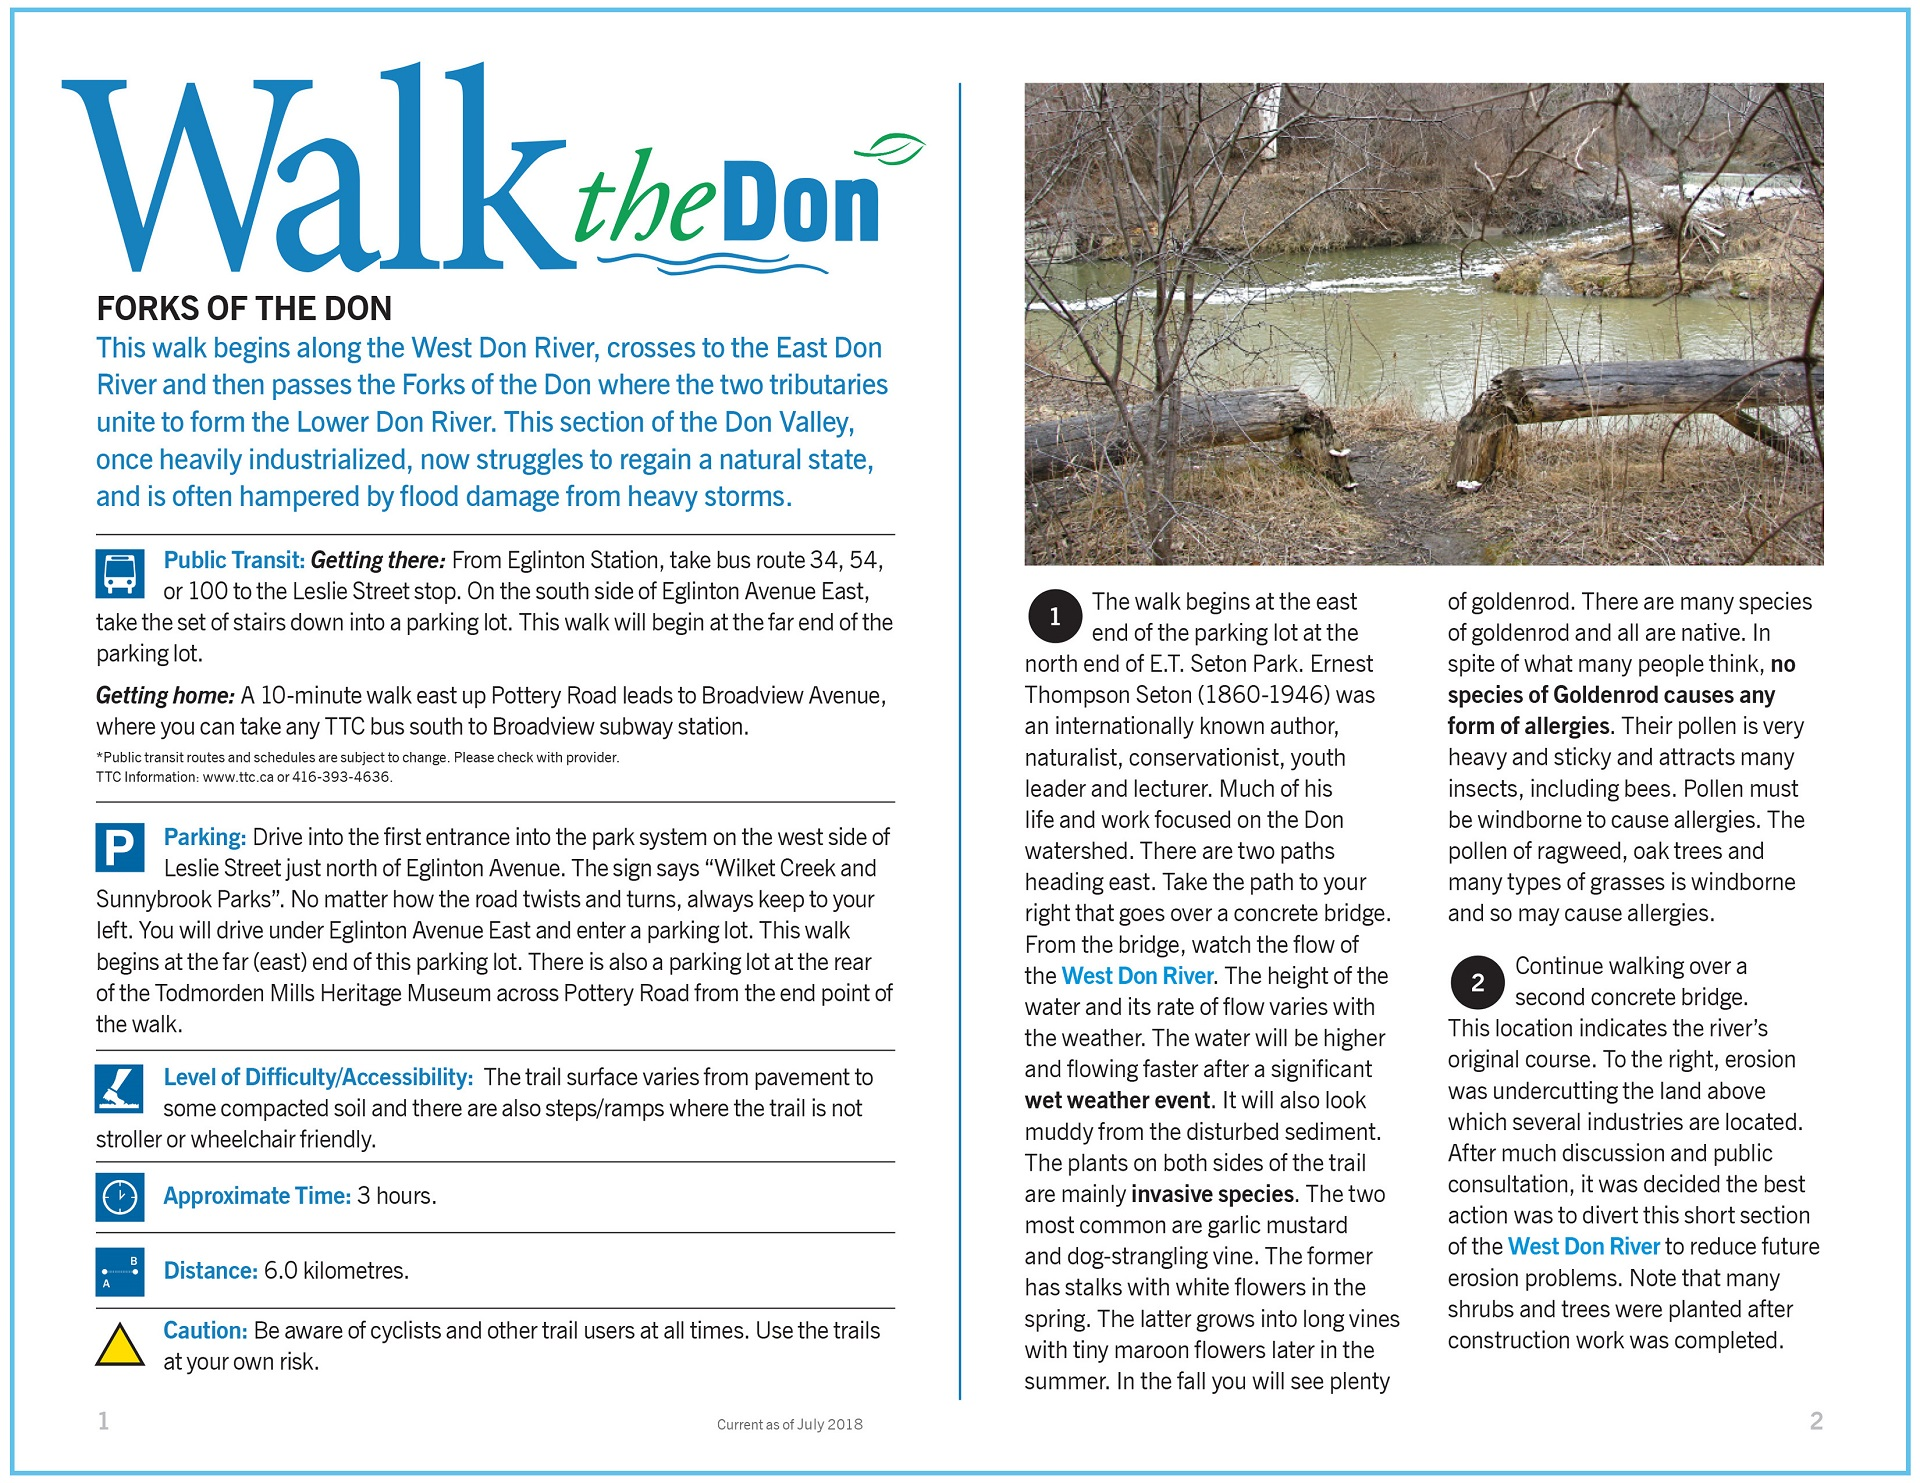 Walk the Don - Forks of the Don Trail Guide